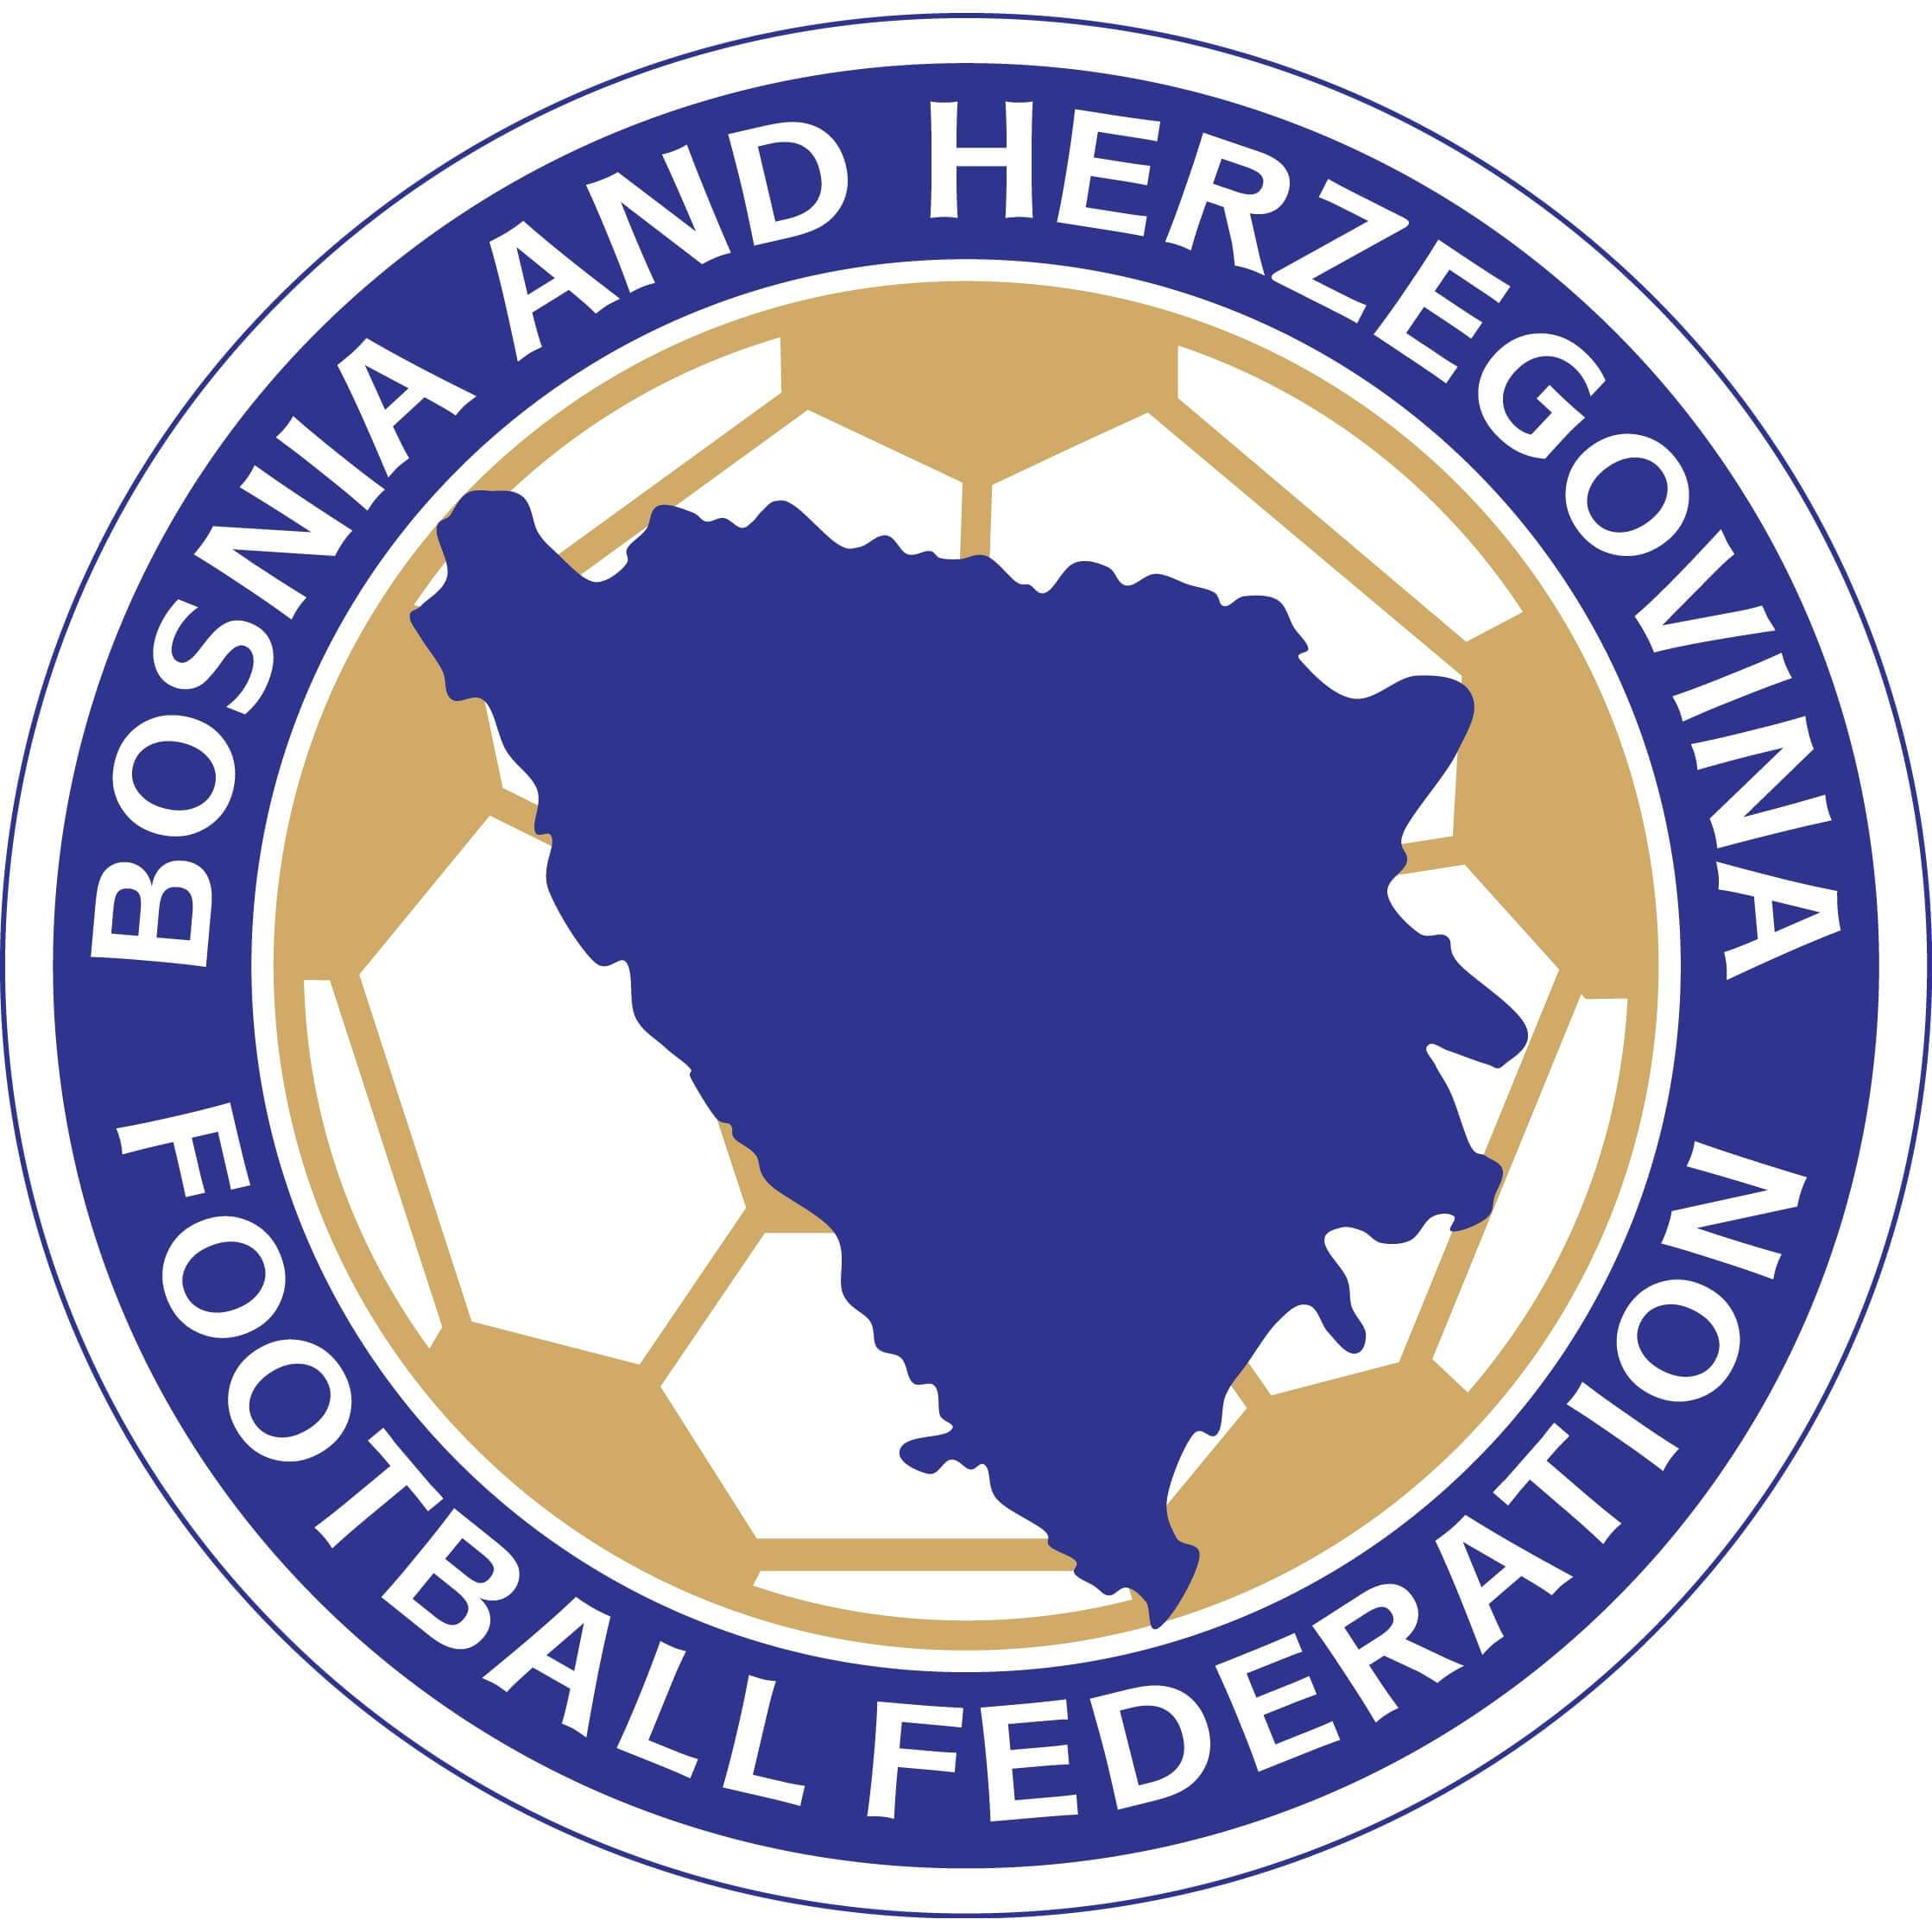 football-federation-of-bosnia-and-herzegovina-bosnia-and-herzegovina-national-football-team-logo